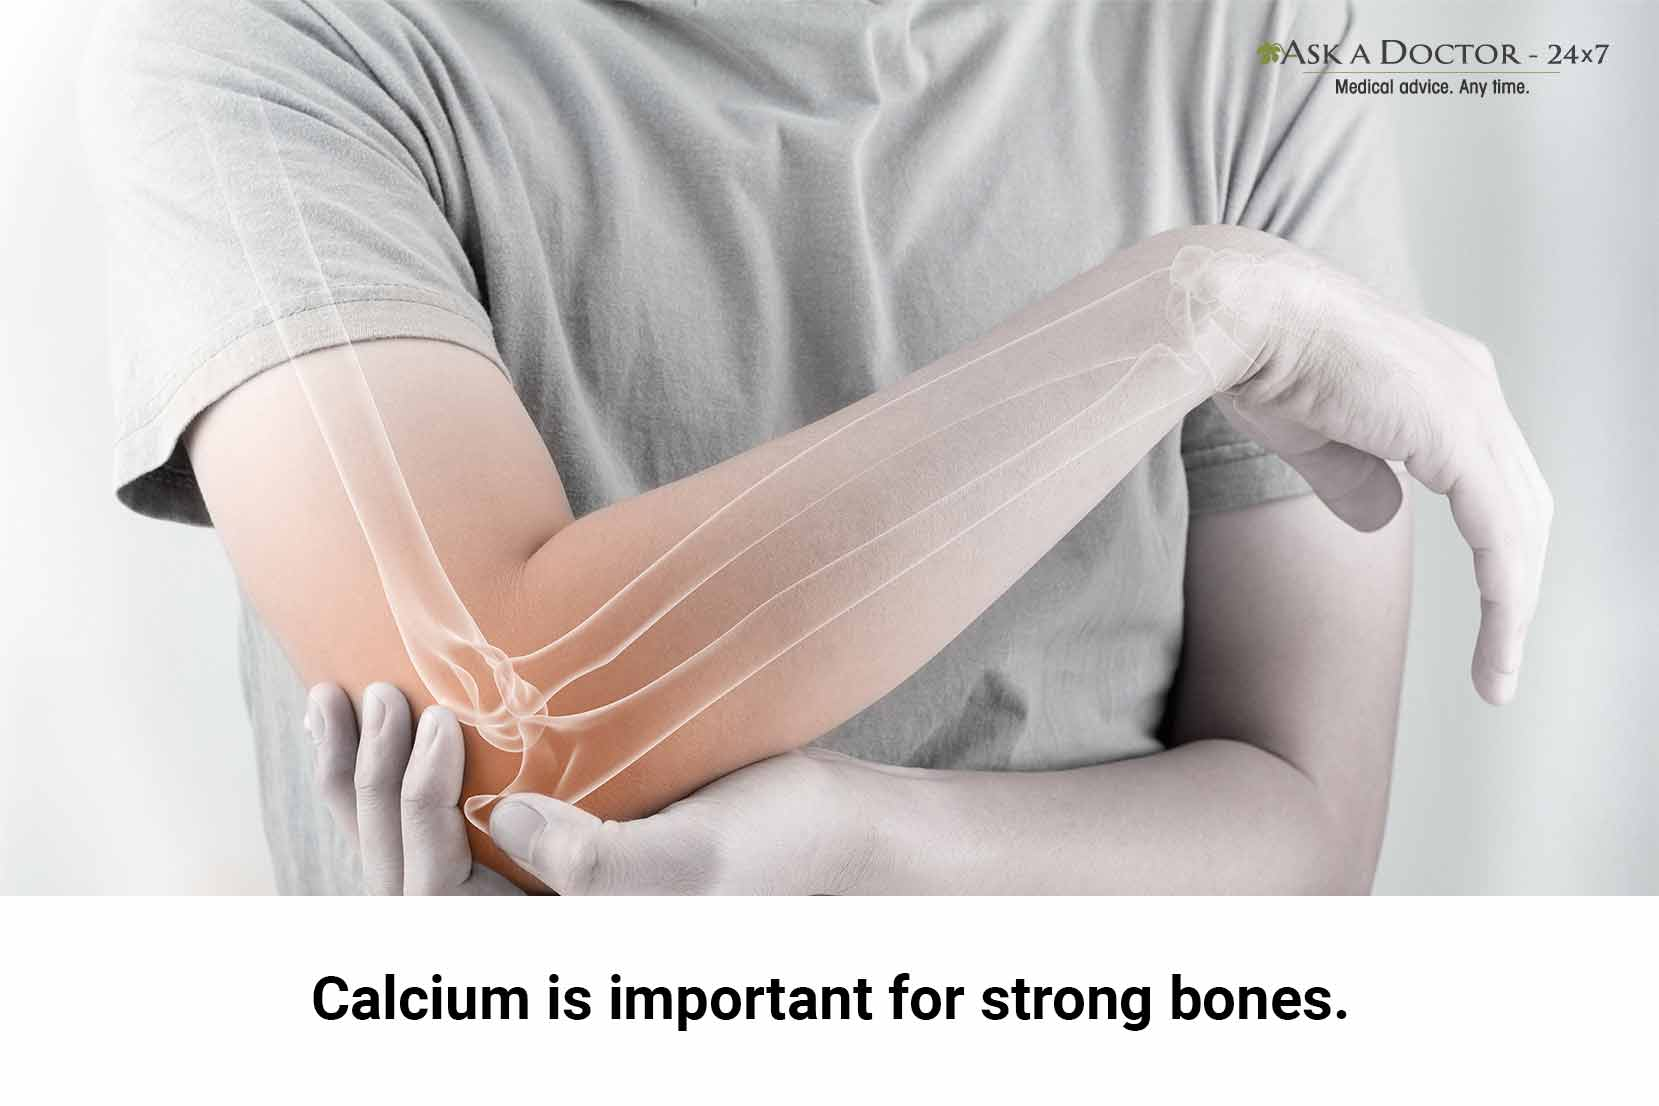 What Are the Signs of a Calcium Deficiency?